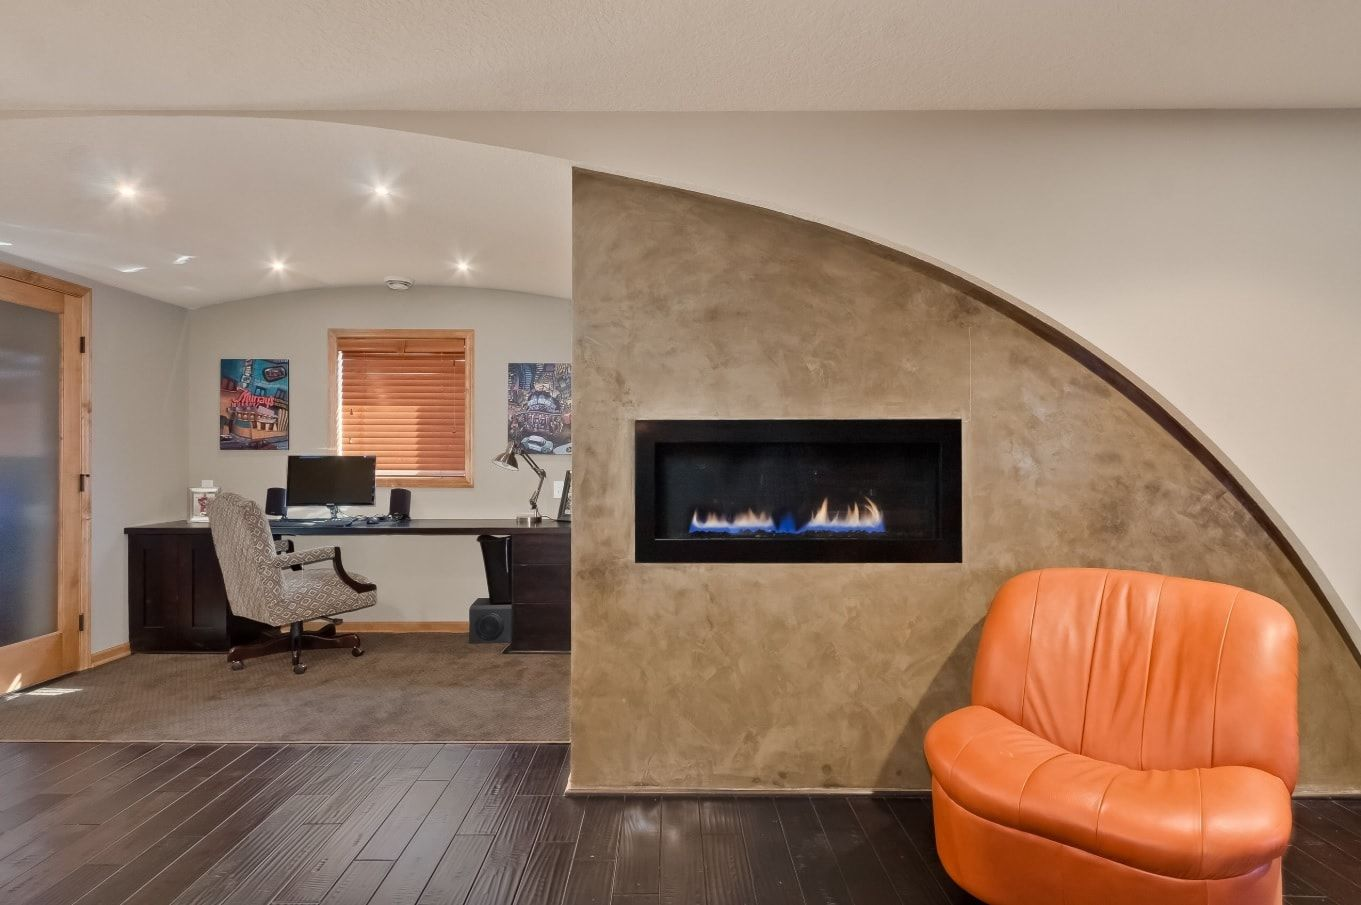 Faux Concrete Wall Paint: Modern and Original Finishing. Arched partition with the built-in fireplace